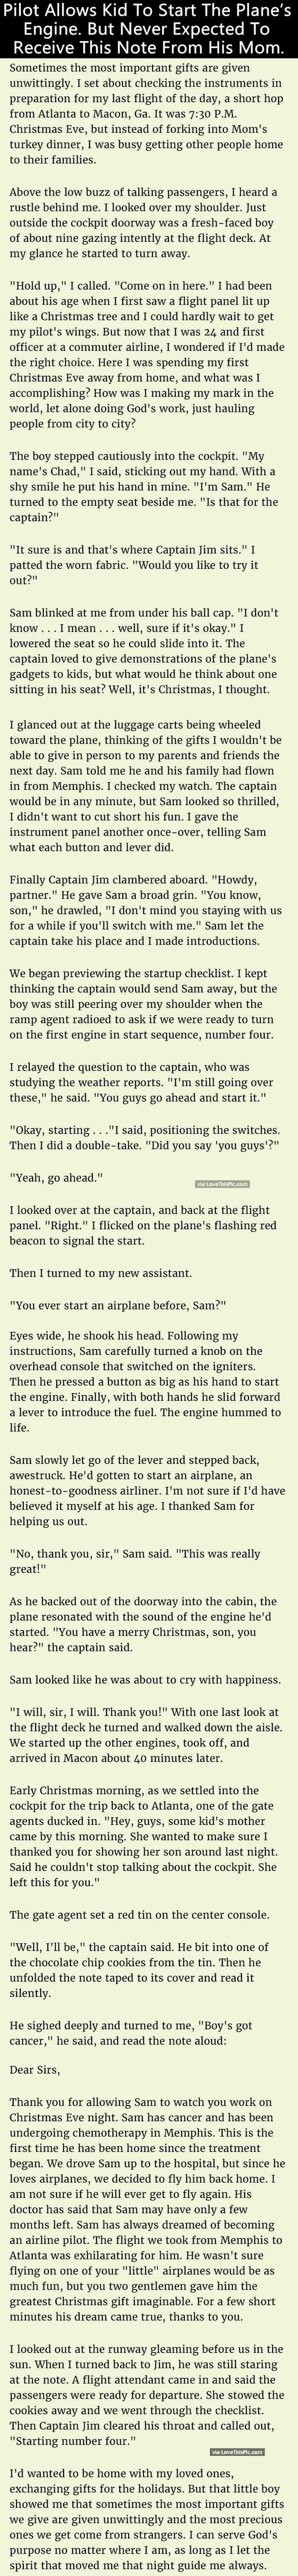 Pilot Allows Kid To Start The Plane's Engine But Never Expected To Receive This Note From His Mom